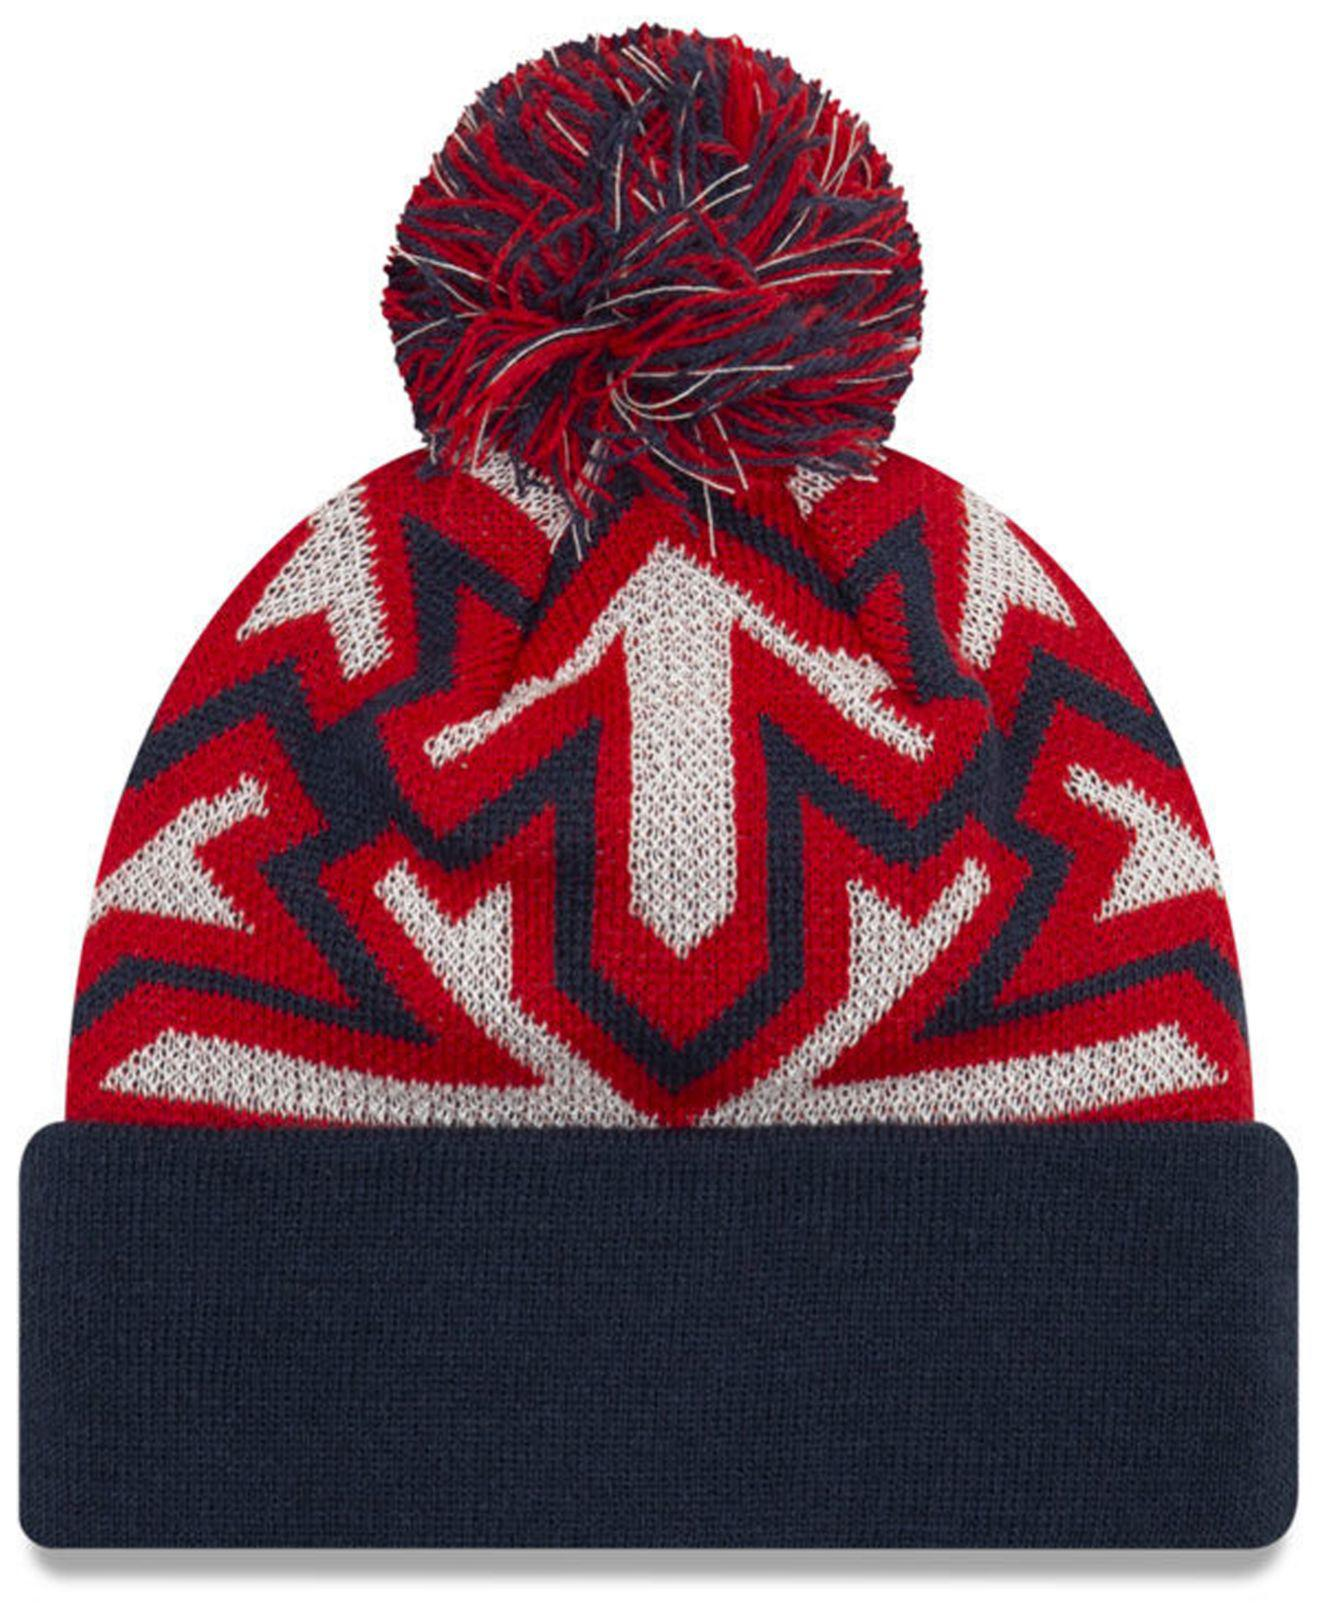 82485d5a74211 Lyst - KTZ Washington Wizards Glowflake Cuff Knit Hat in Blue for Men